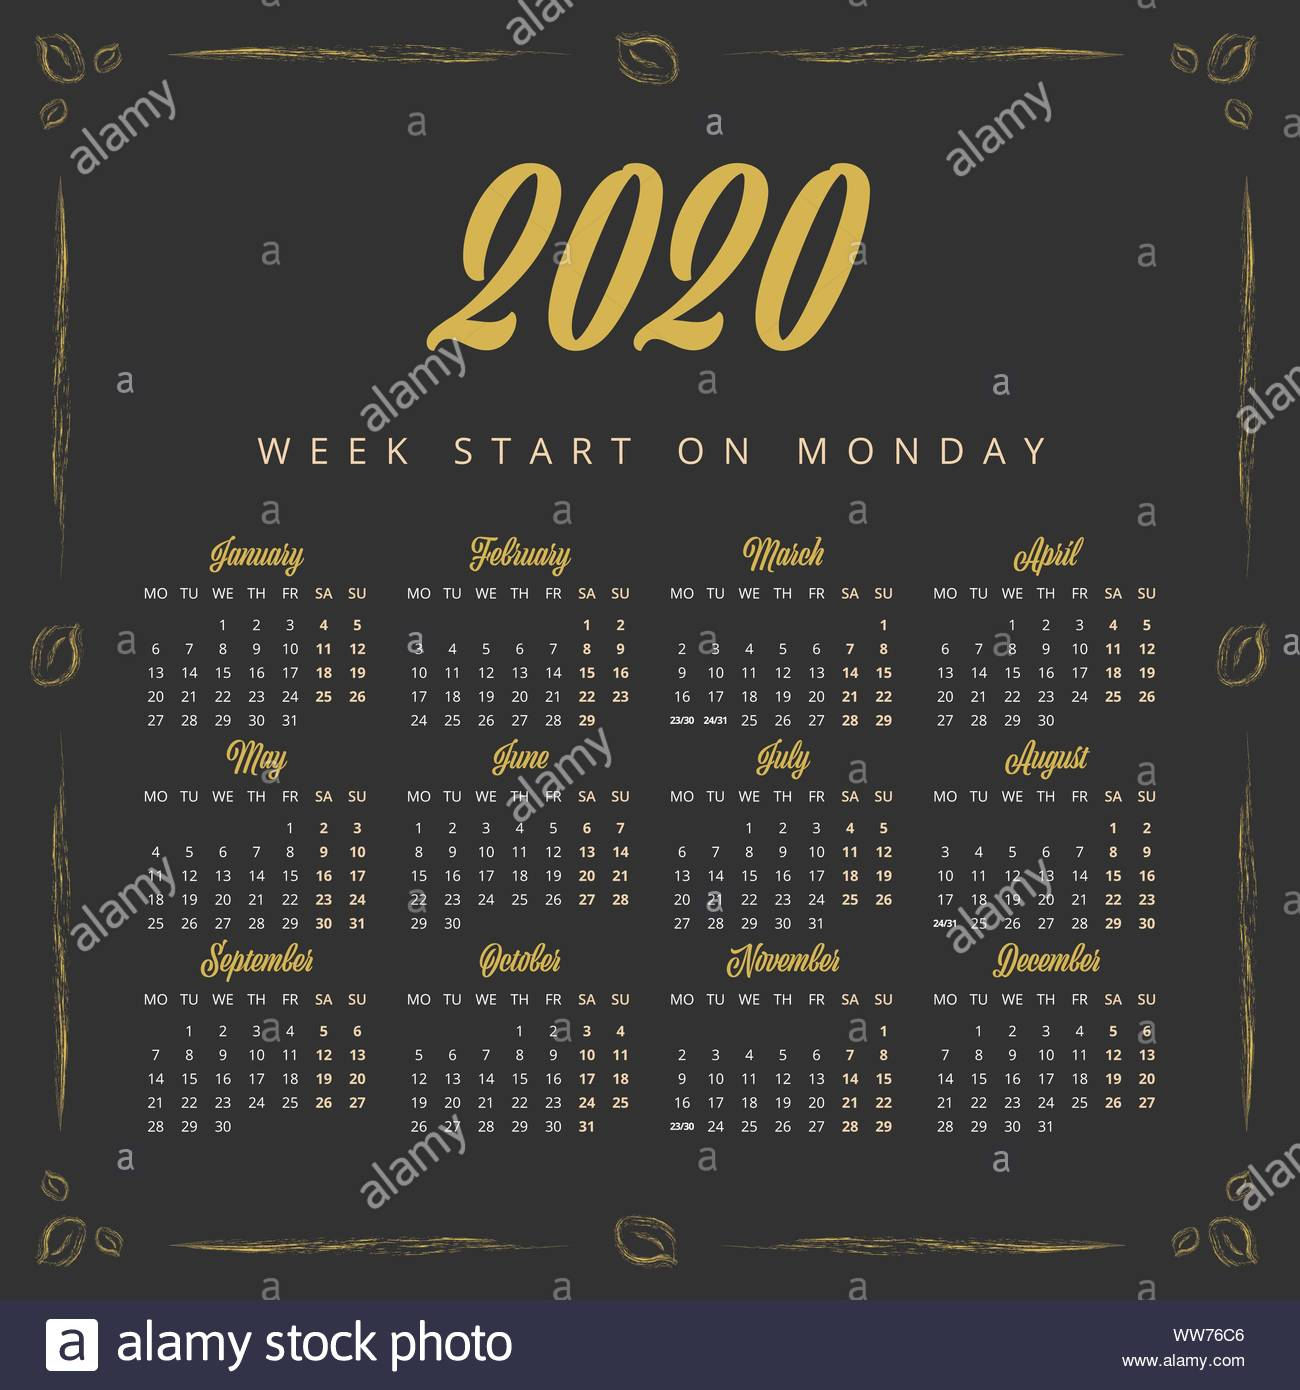 Vintage 2020 Year Calendar On The Black Background Stock